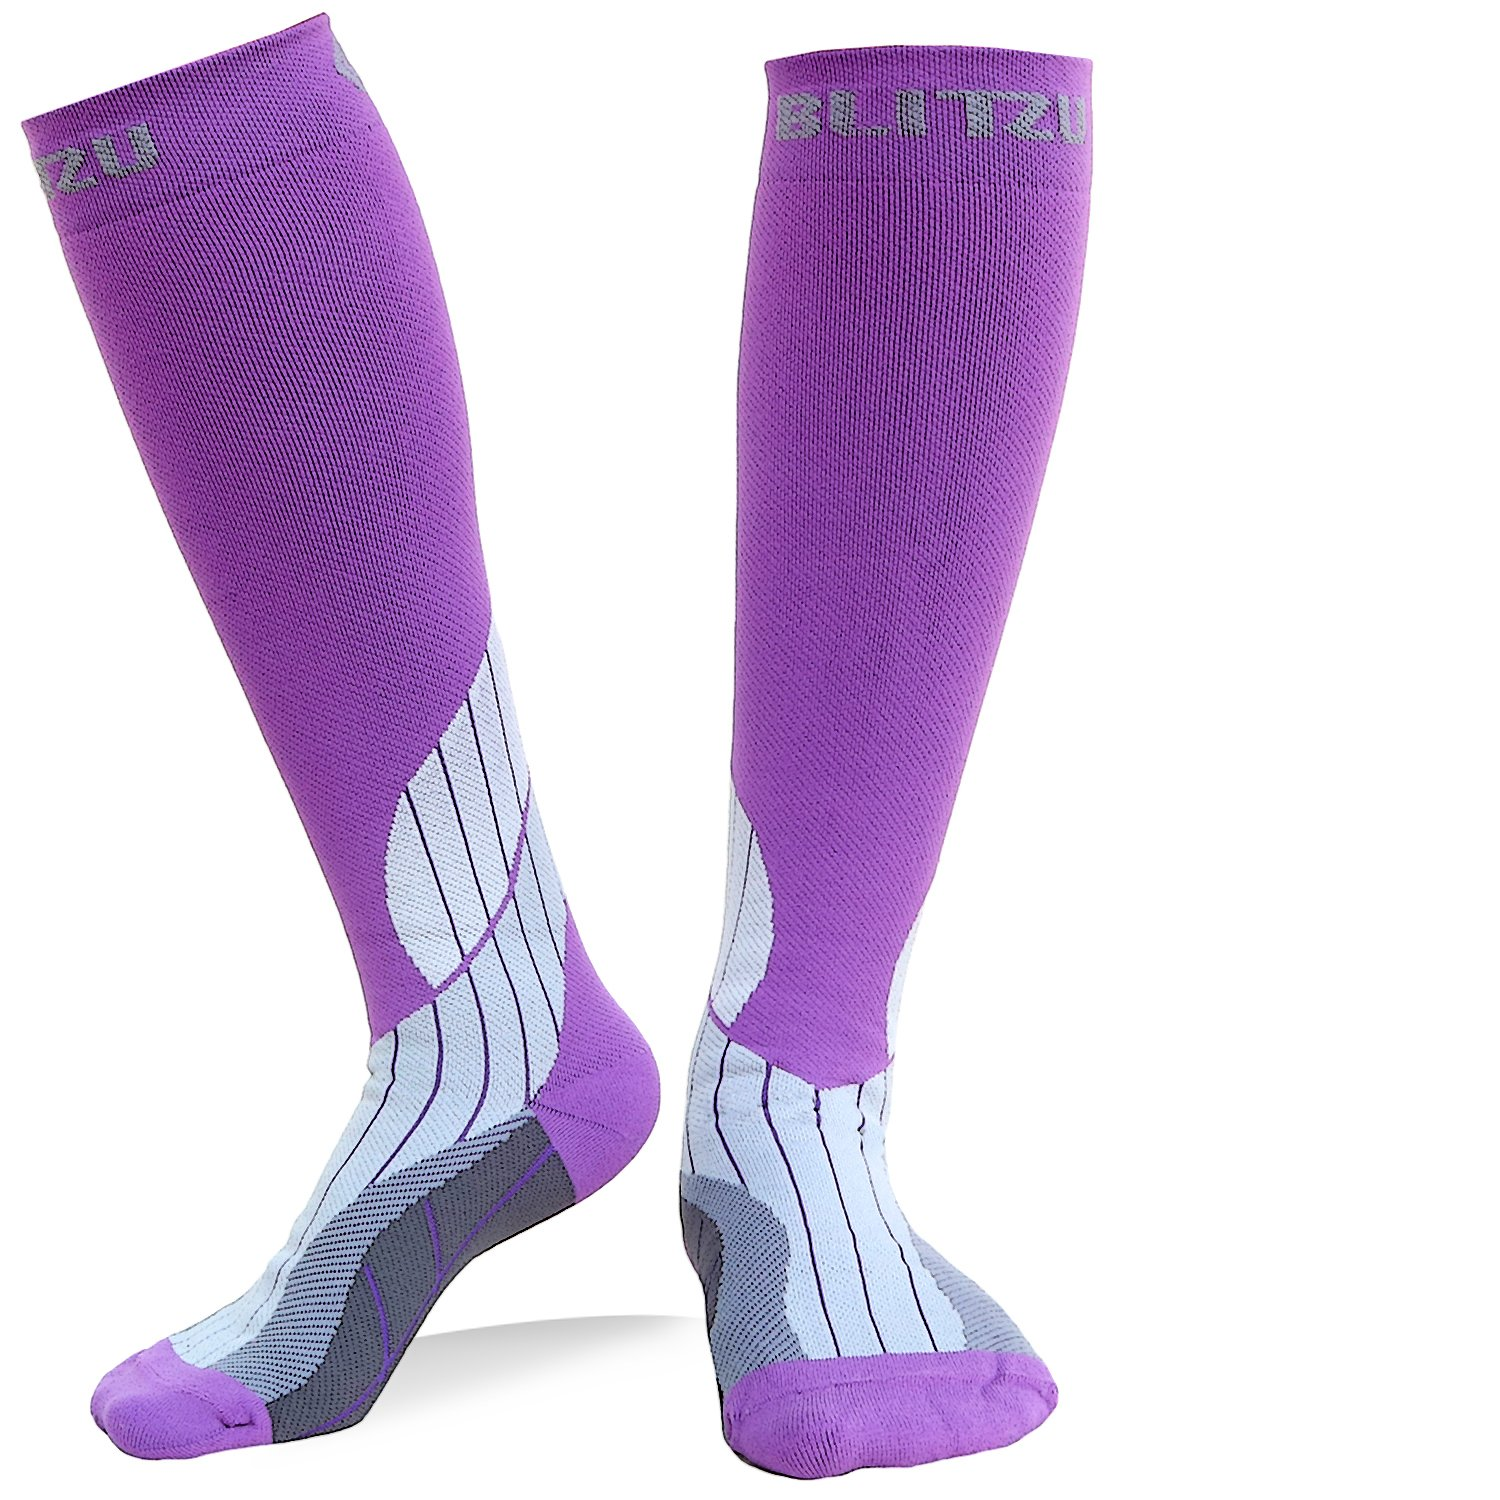 BLITZU Compression Socks 20-30mmHg for Men Women Recovery for Running Medical Athletic Edema Diabetic Varicose Veins Travel Pregnancy Relief Shin Splints Nursing (Large/X-Large, Orchid)